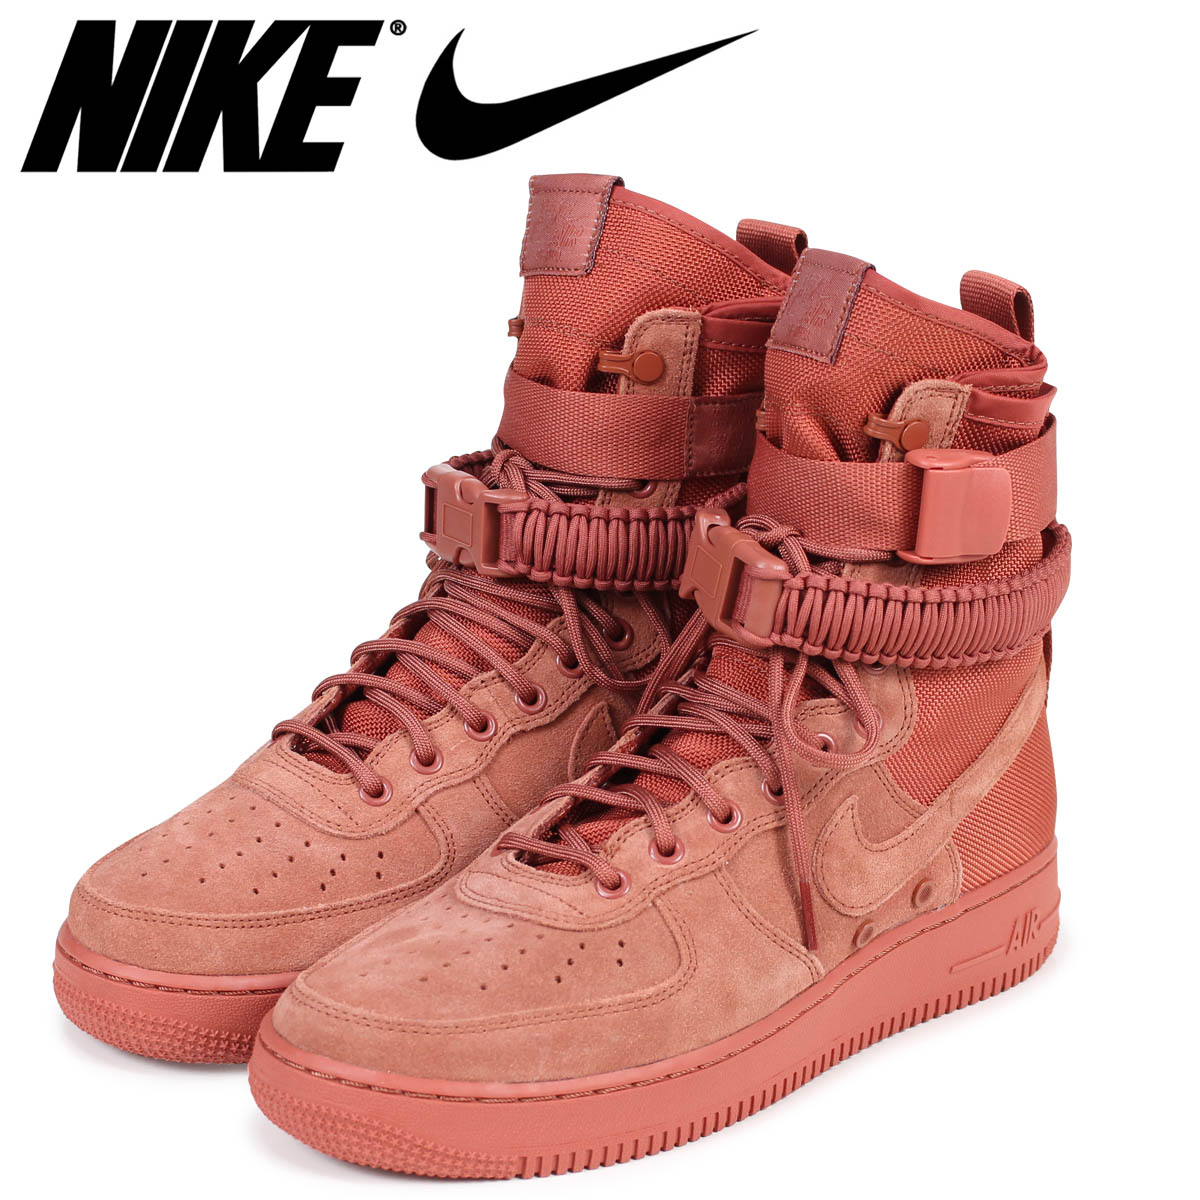 【10%OFF】 NIKE ナイキ エアフォース1 スニーカー スペシャル フィールド SPECIAL FIELD AIR FORCE 1 864024-204 SF AF1 メンズ ピンク